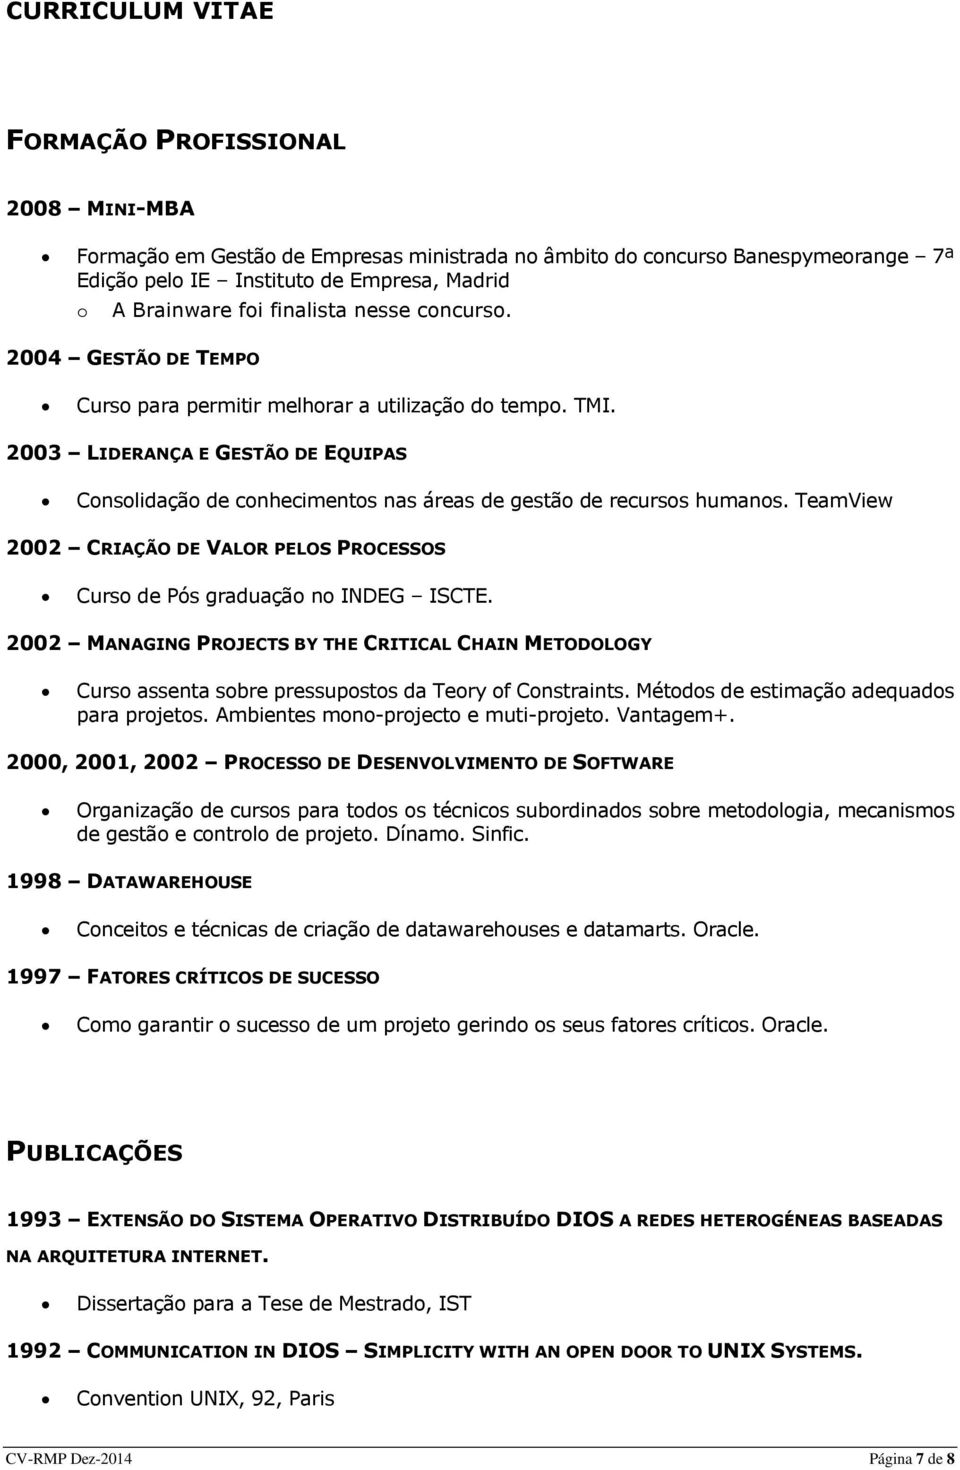 TeamView 2002 CRIAÇÃO DE VALOR PELOS PROCESSOS Curs de Pós graduaçã n INDEG ISCTE. 2002 MANAGING PROJECTS BY THE CRITICAL CHAIN METODOLOGY Curs assenta sbre pressupsts da Tery f Cnstraints.